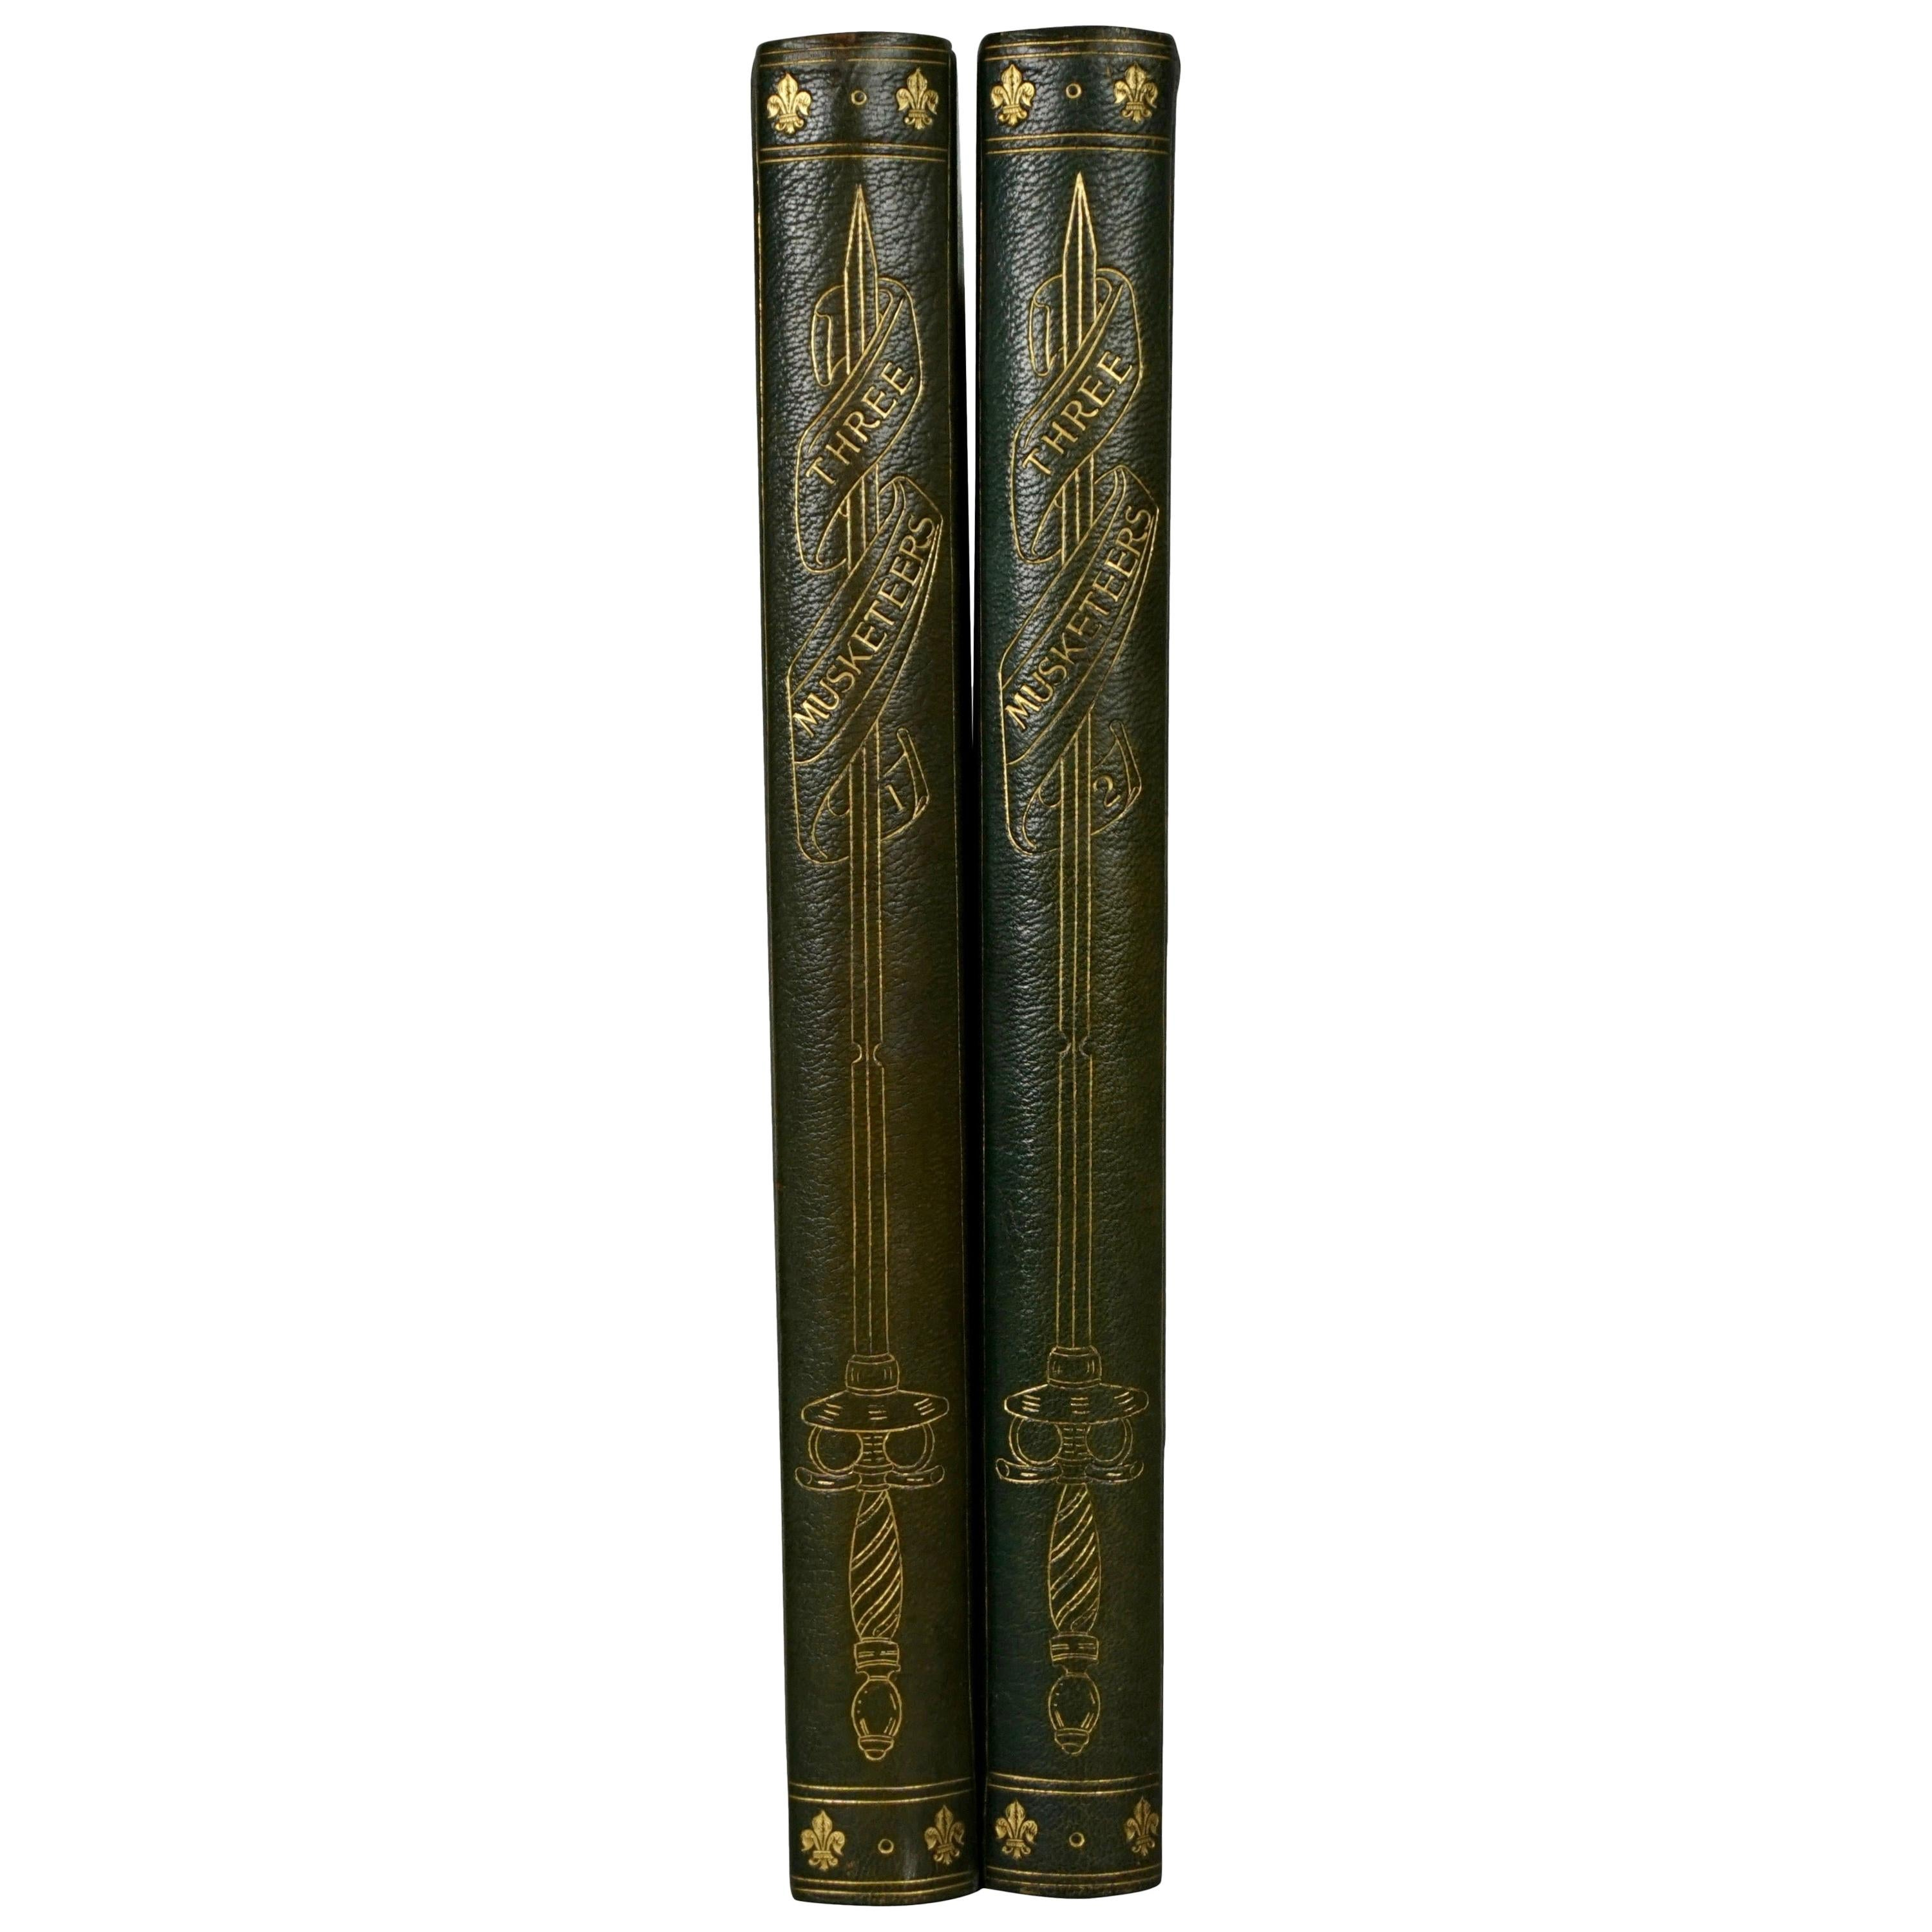 Limited Deluxe Edition of Dumas' Three Musketeers in 2 Leather Bound Volumes